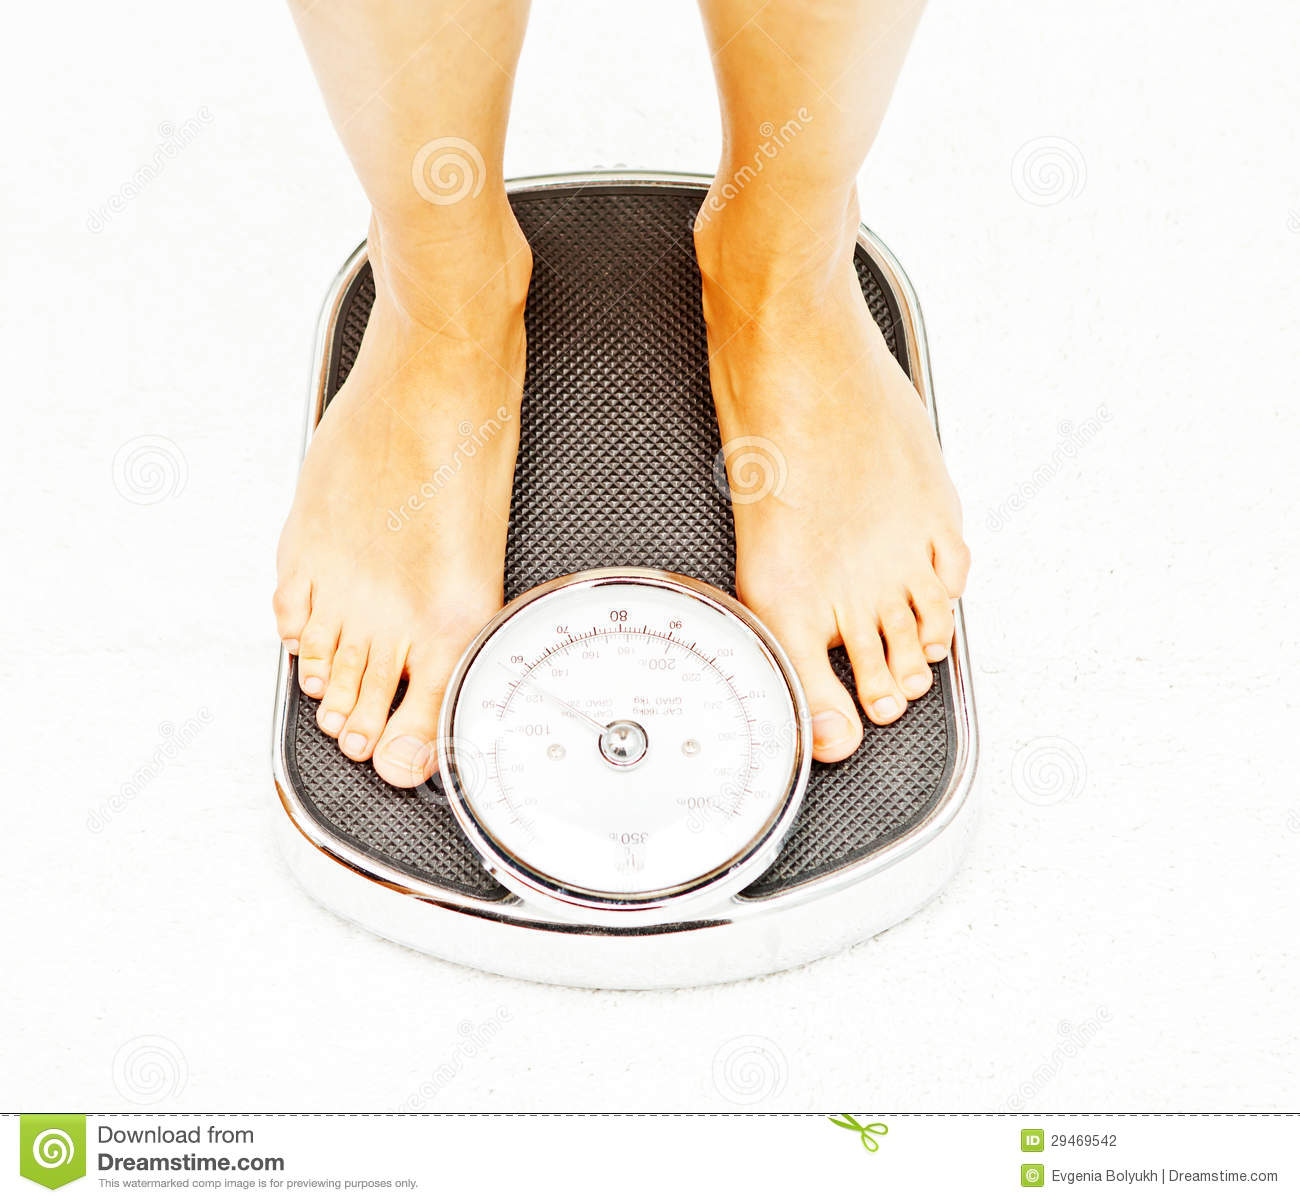 Feet On Floor Scales Stock Photography - Image: 29469542